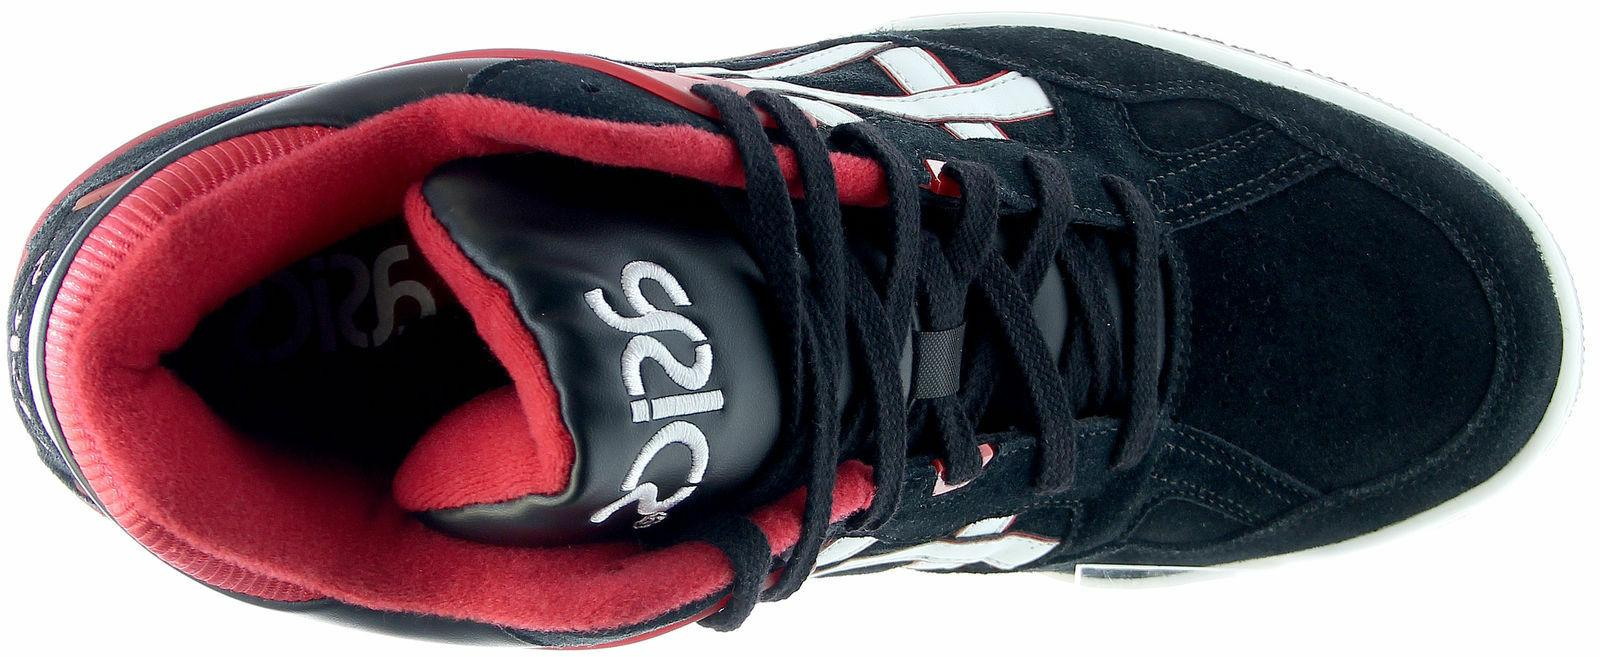 Mens Asics High Top Sneakers Black/White/Red